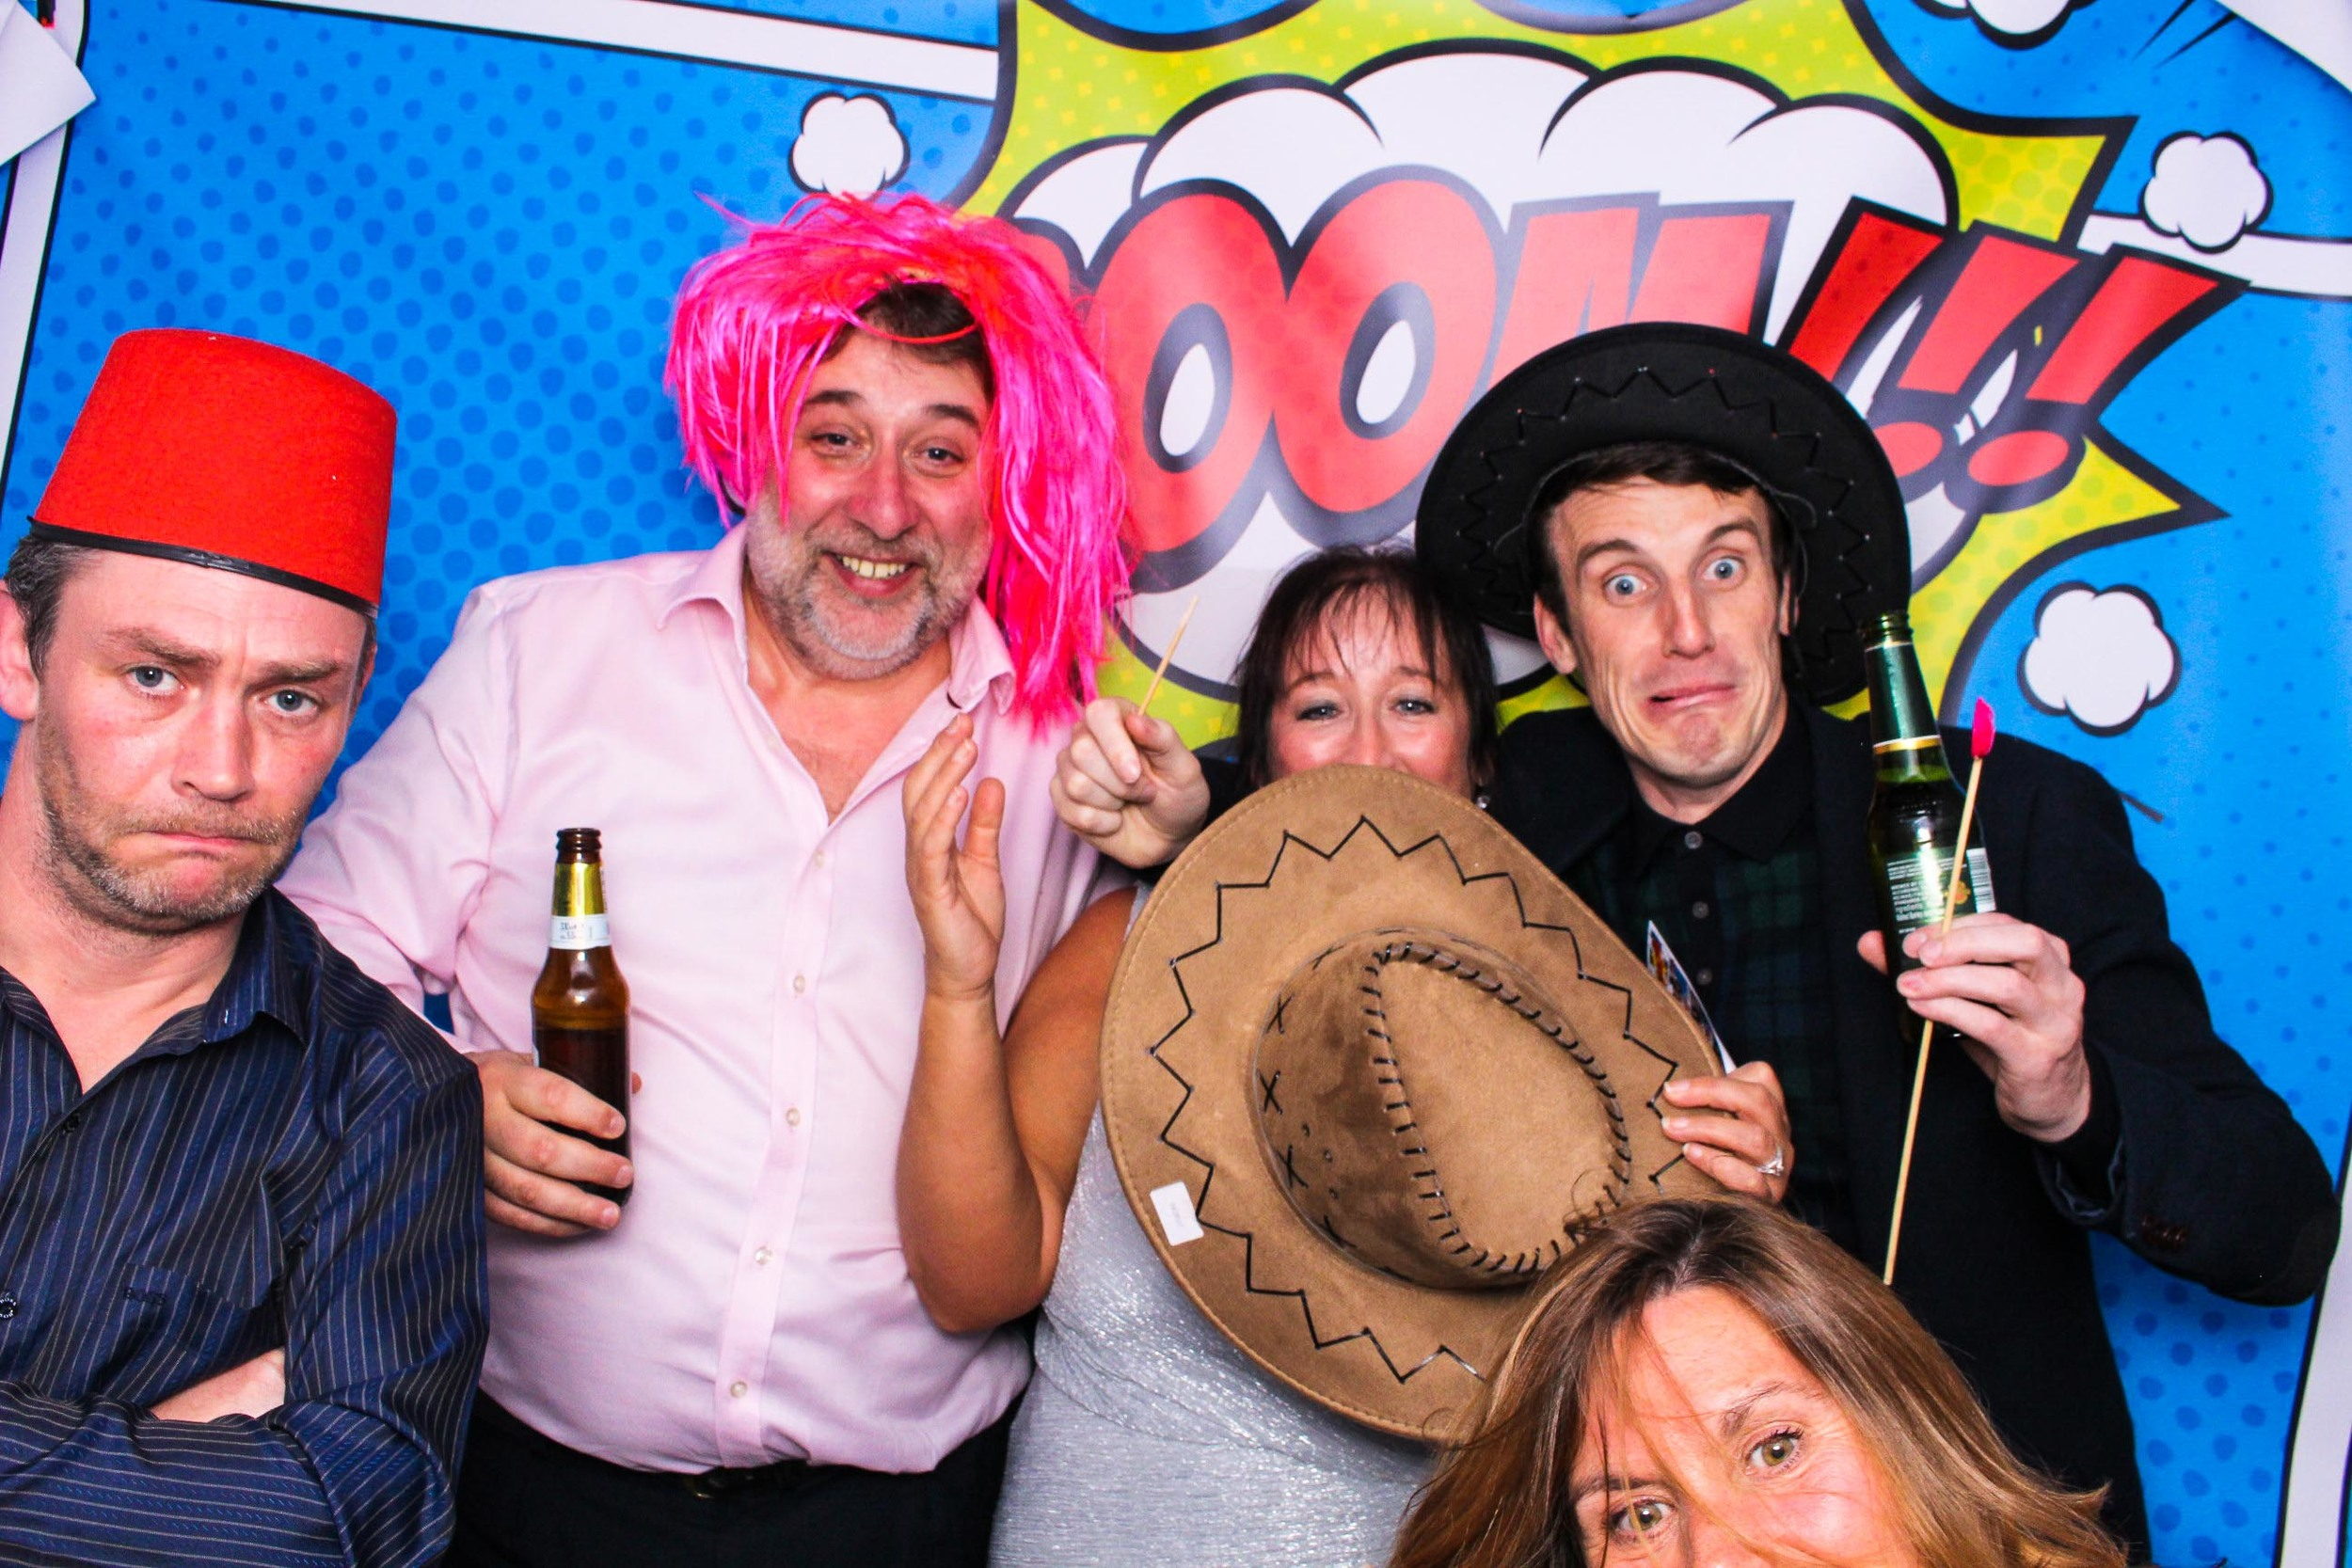 Fotoauto Photo Booth Hire - Shop Direct-184.jpg